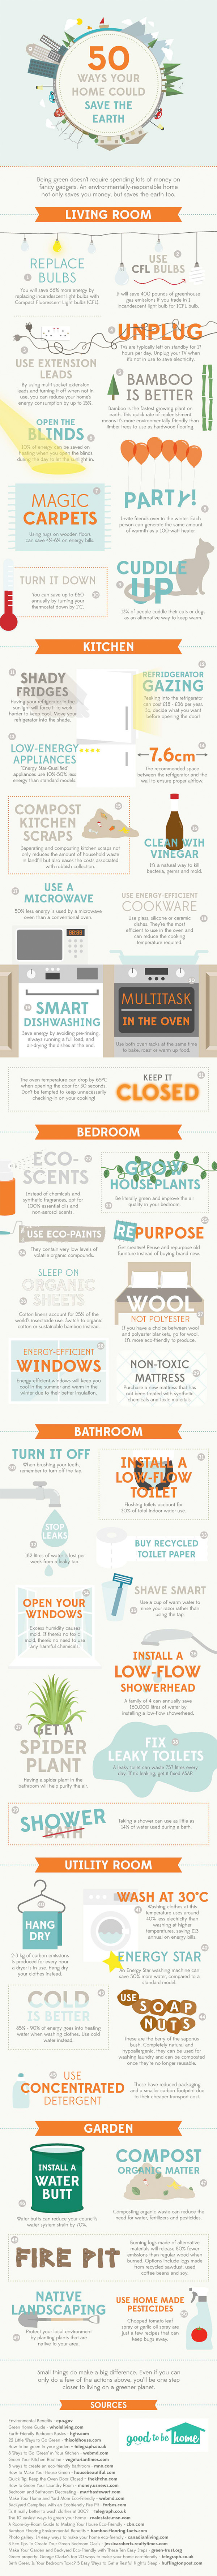 "Image by <a href=""http://www.anglianhome.co.uk/goodtobehome/eco-living/50-ways-home-can-save-earth-infographic/#.VCJ-Cee7nKk"">Anglian Home</a>"